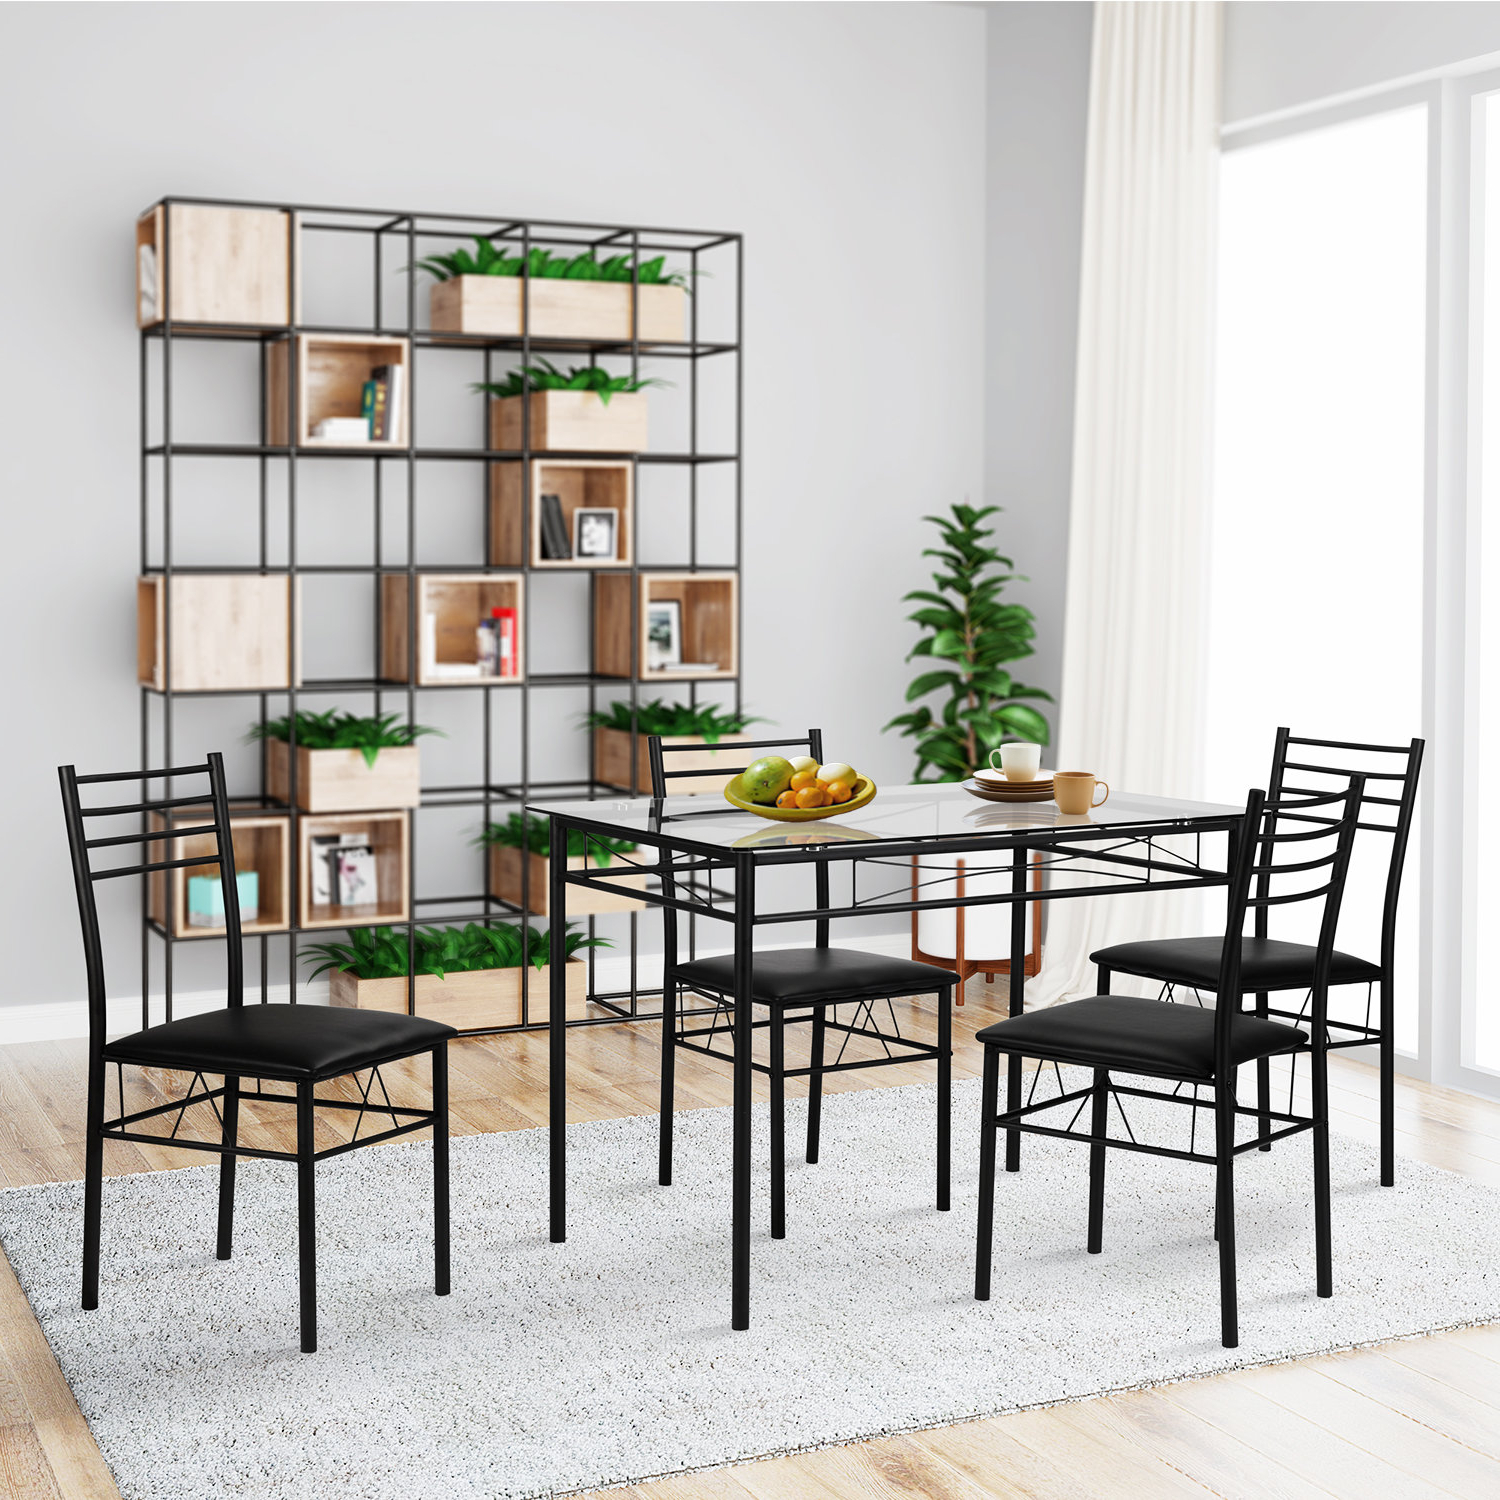 Most Recently Released Lightle 5 Piece Breakfast Nook Dining Sets Intended For Ebern Designs Lightle 5 Piece Breakfast Nook Dining Set (View 2 of 25)